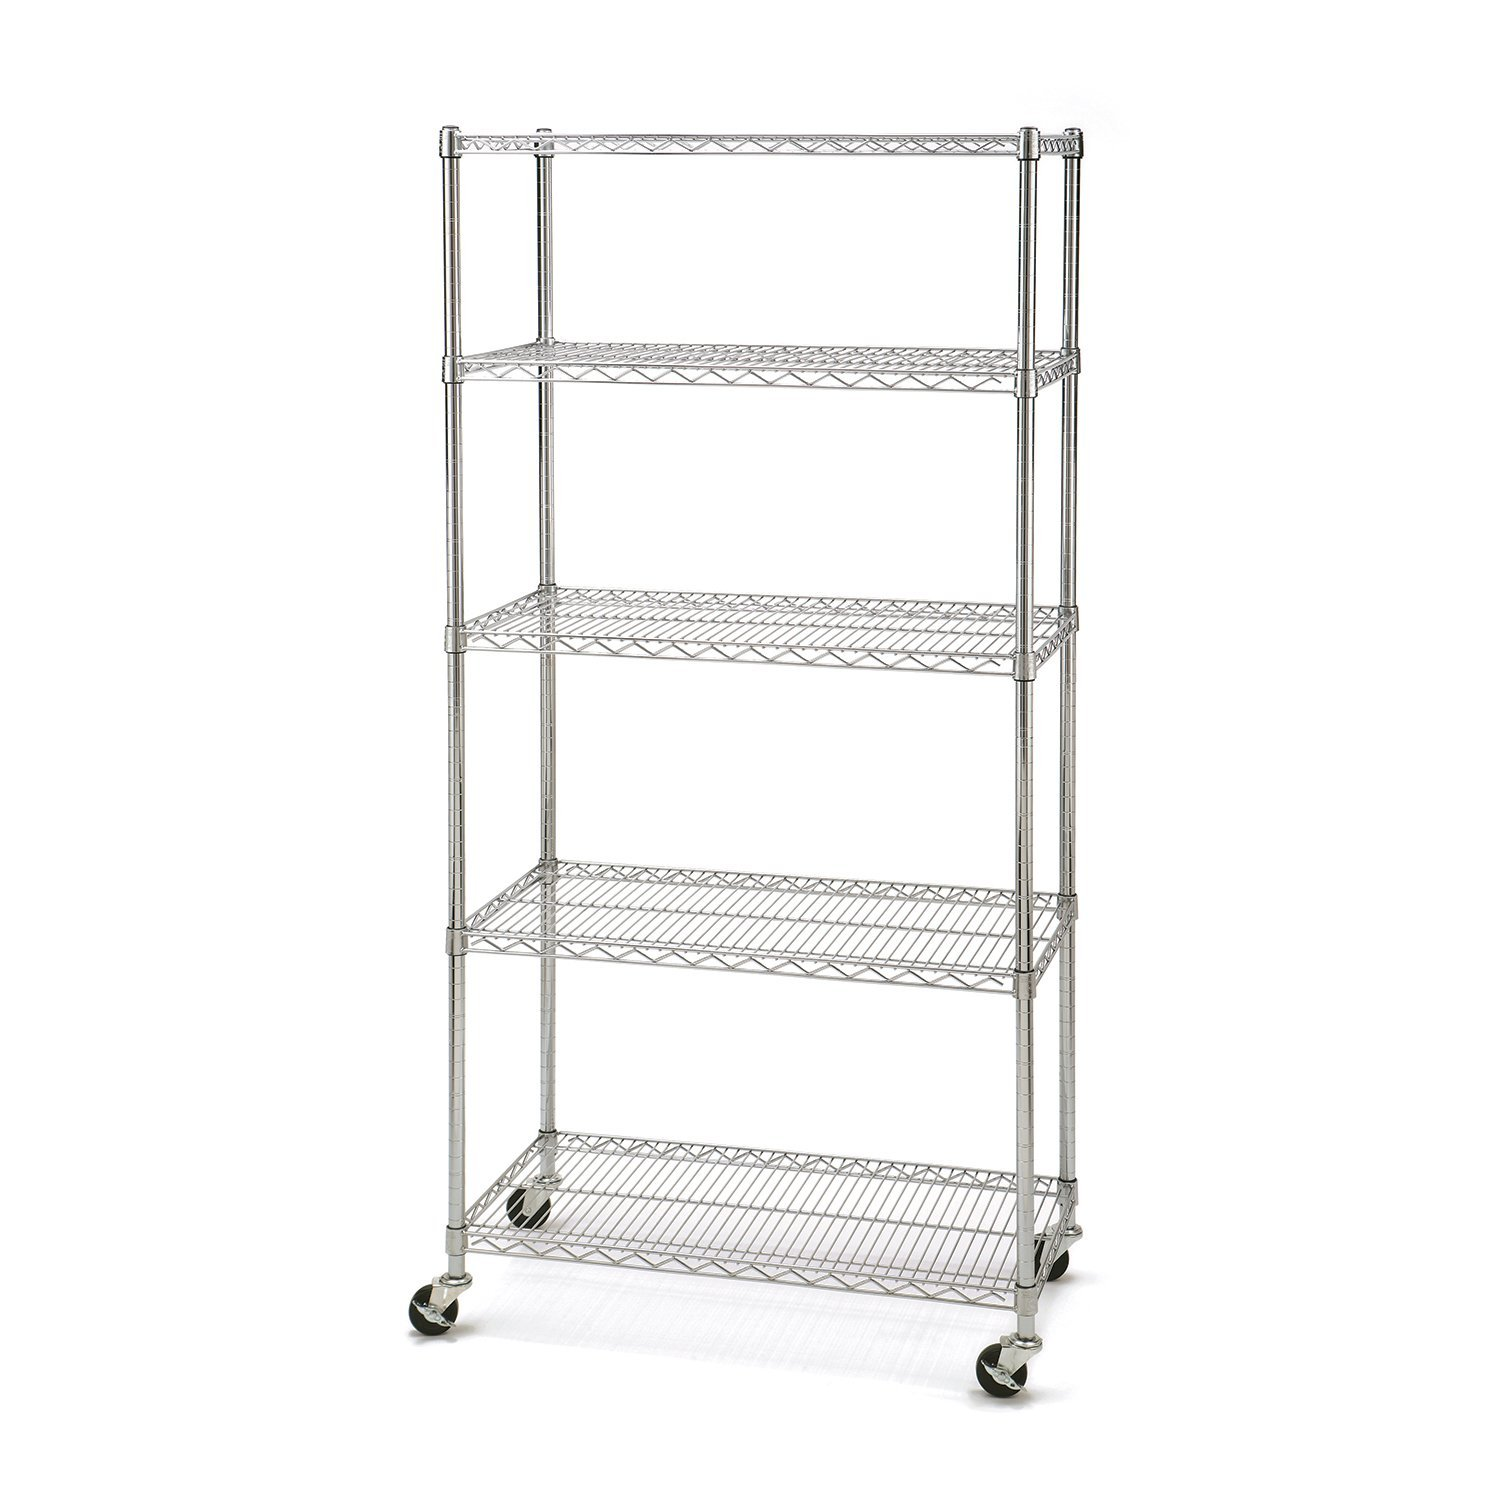 Seville Classics 5-Tier Commercial Shelving with Wheels by Seville Classics (Image #1)